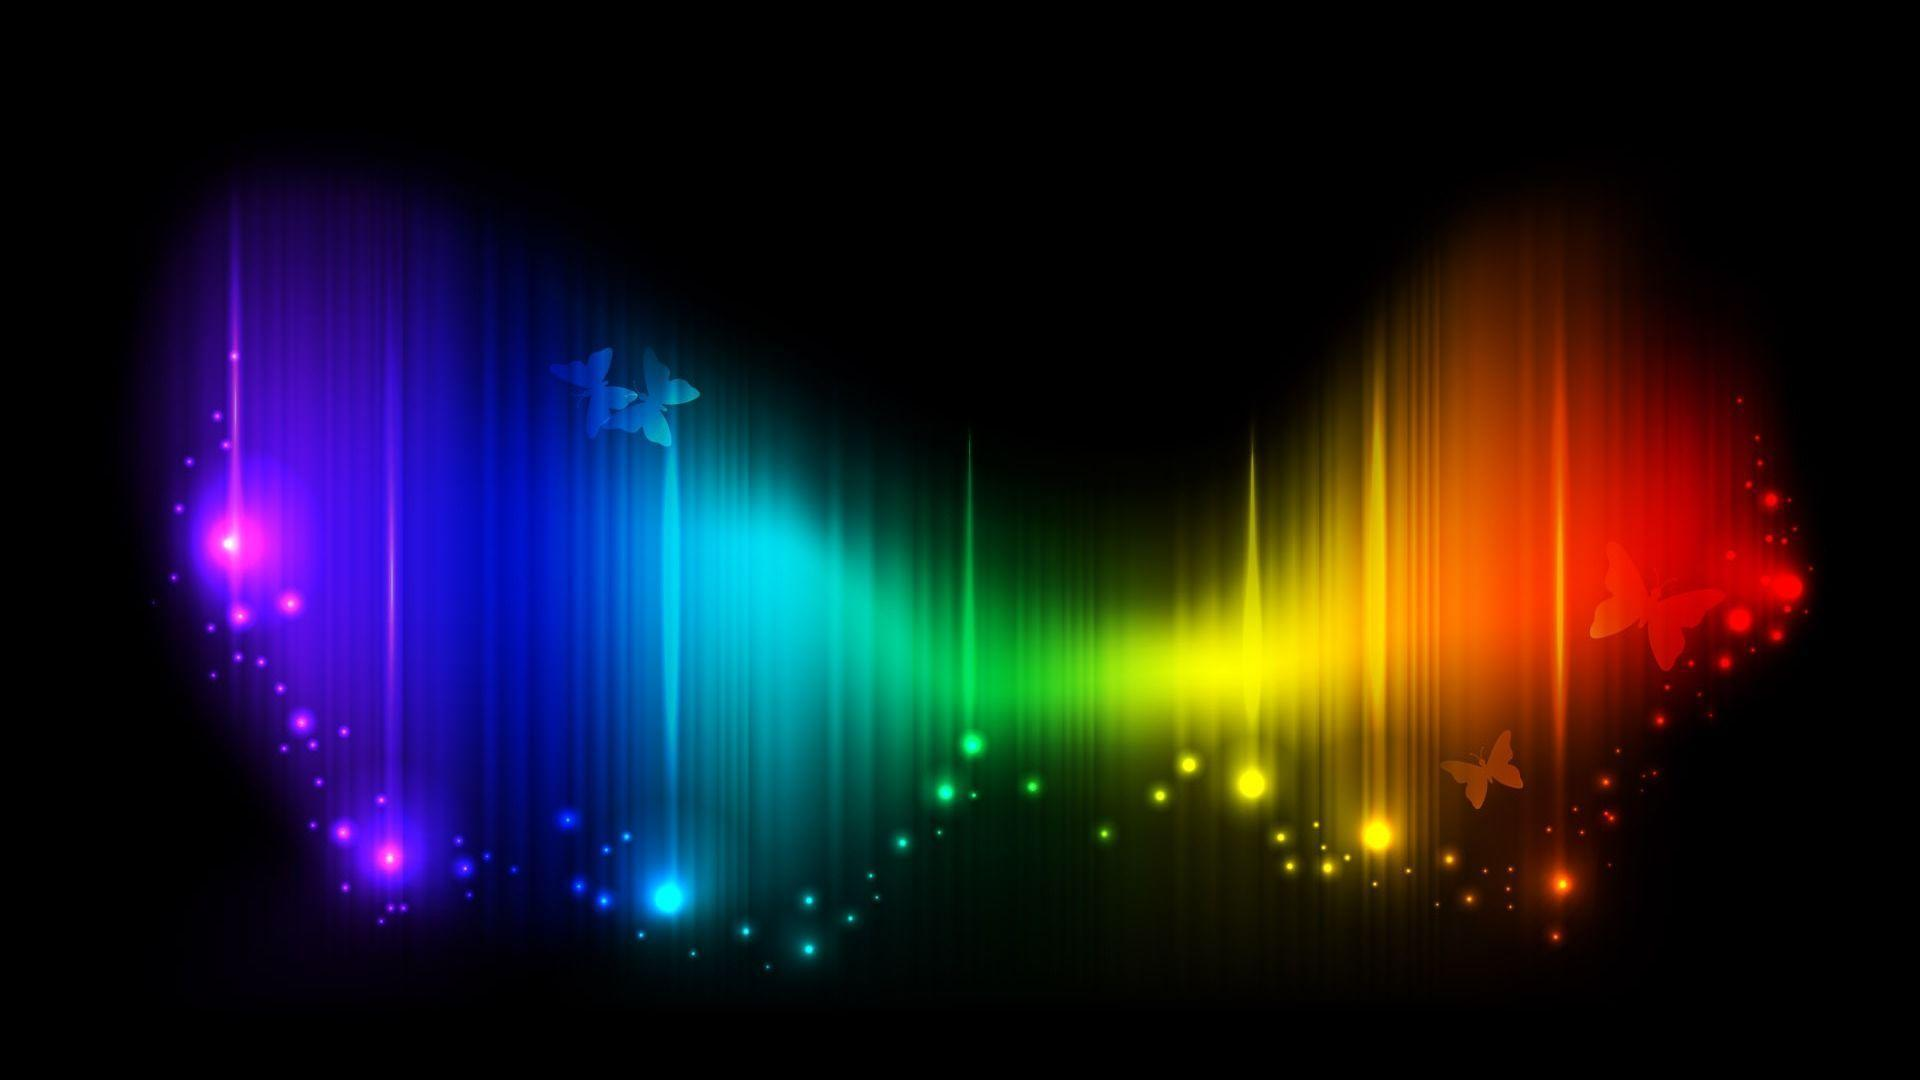 Colorful Designs For Backgrounds - Wallpaper Cave